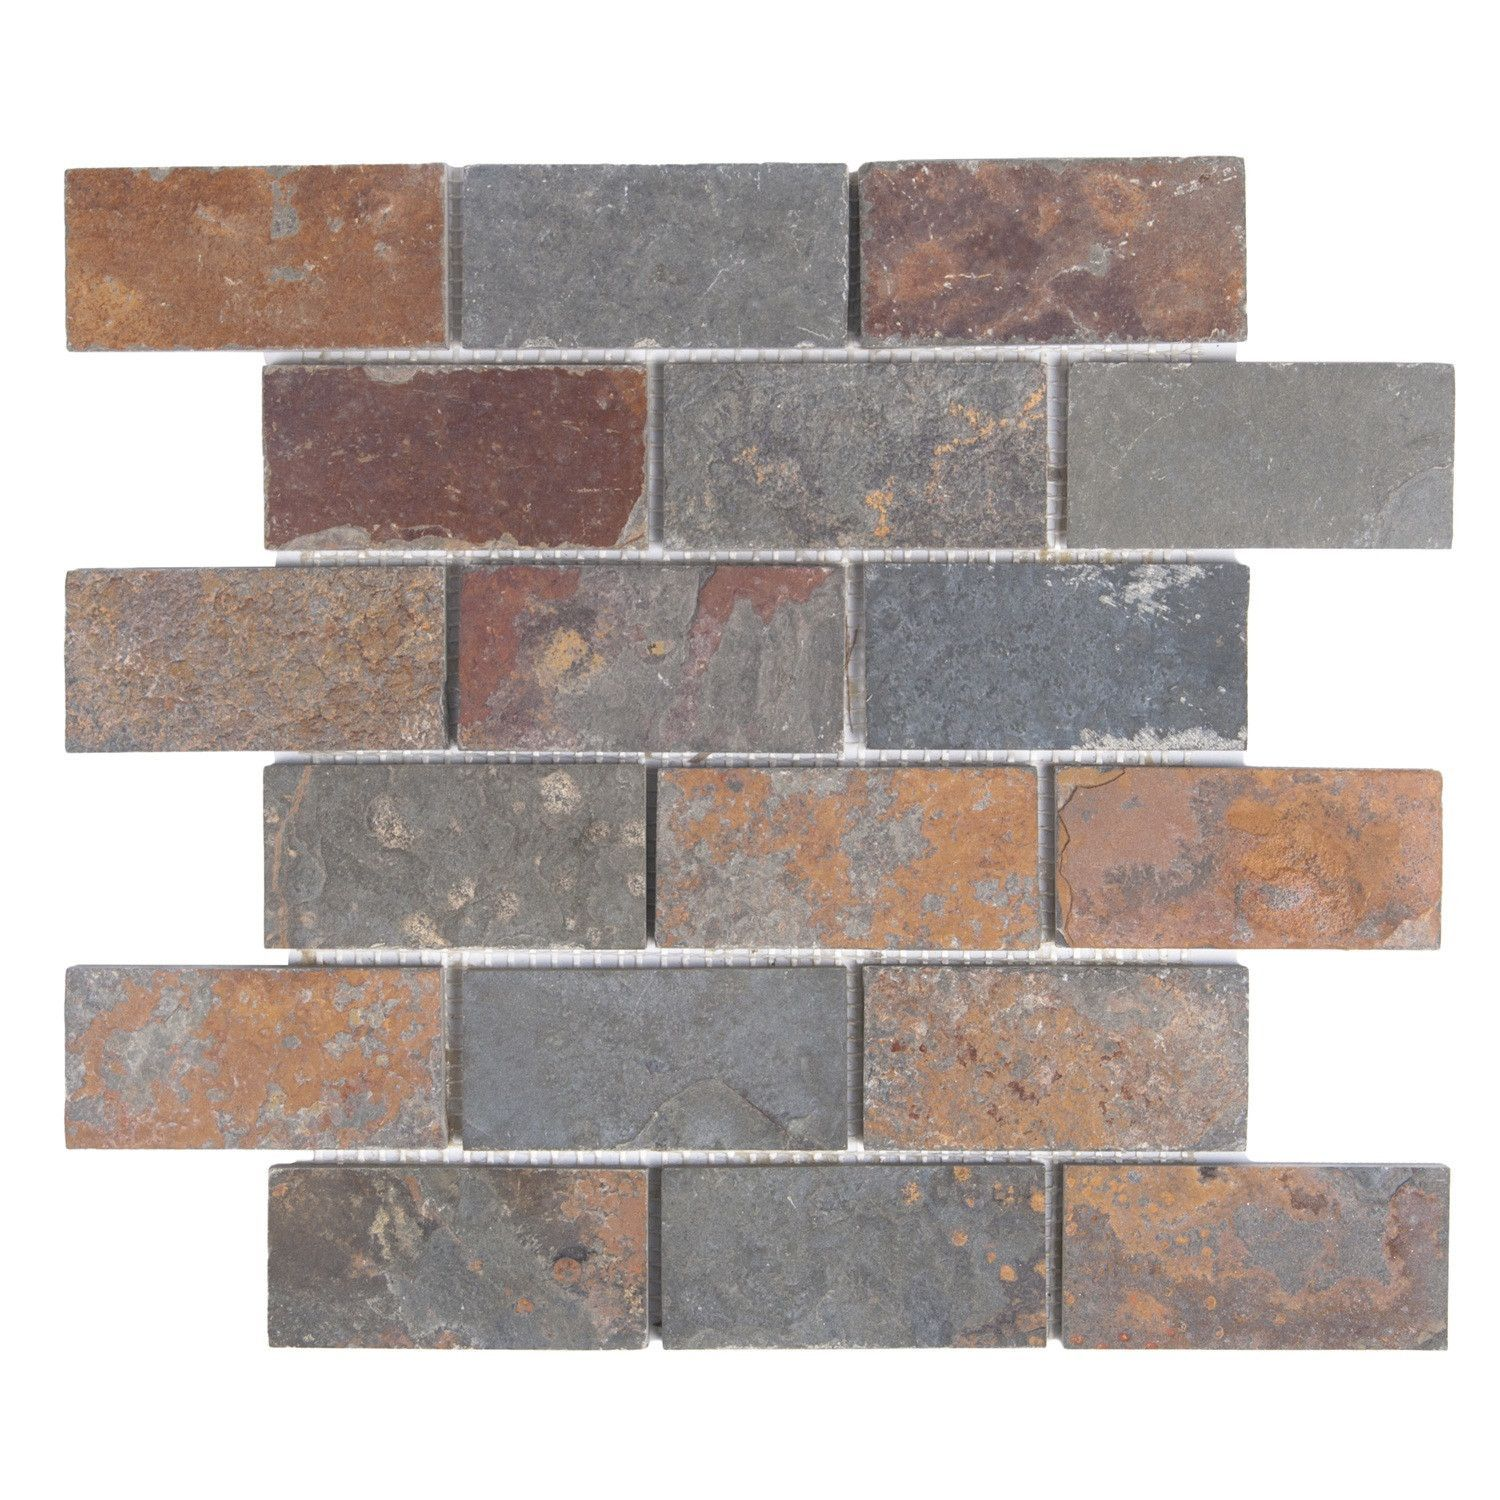 Multicolor slate mosaic subway tile 2x4 products pinterest multicolor slate mosaic subway tile 2x4 dailygadgetfo Gallery